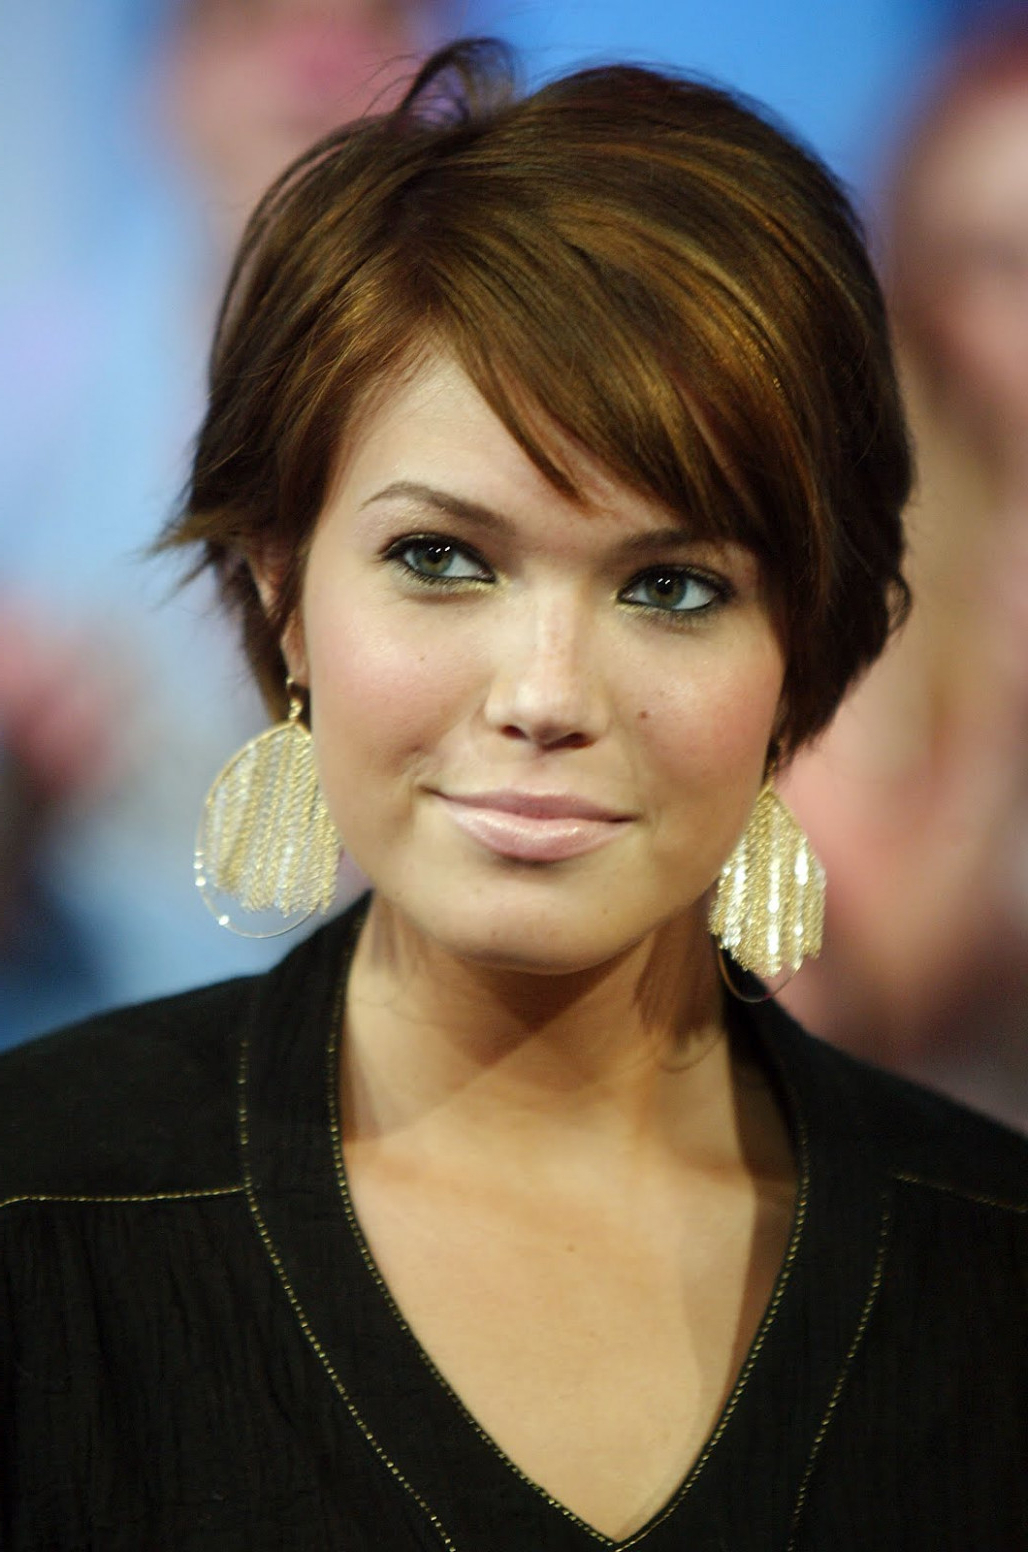 5 Gorgeous Short Haircuts For Round Faces – Low Maintenance Throughout No Maintenance Short Haircuts (View 7 of 25)